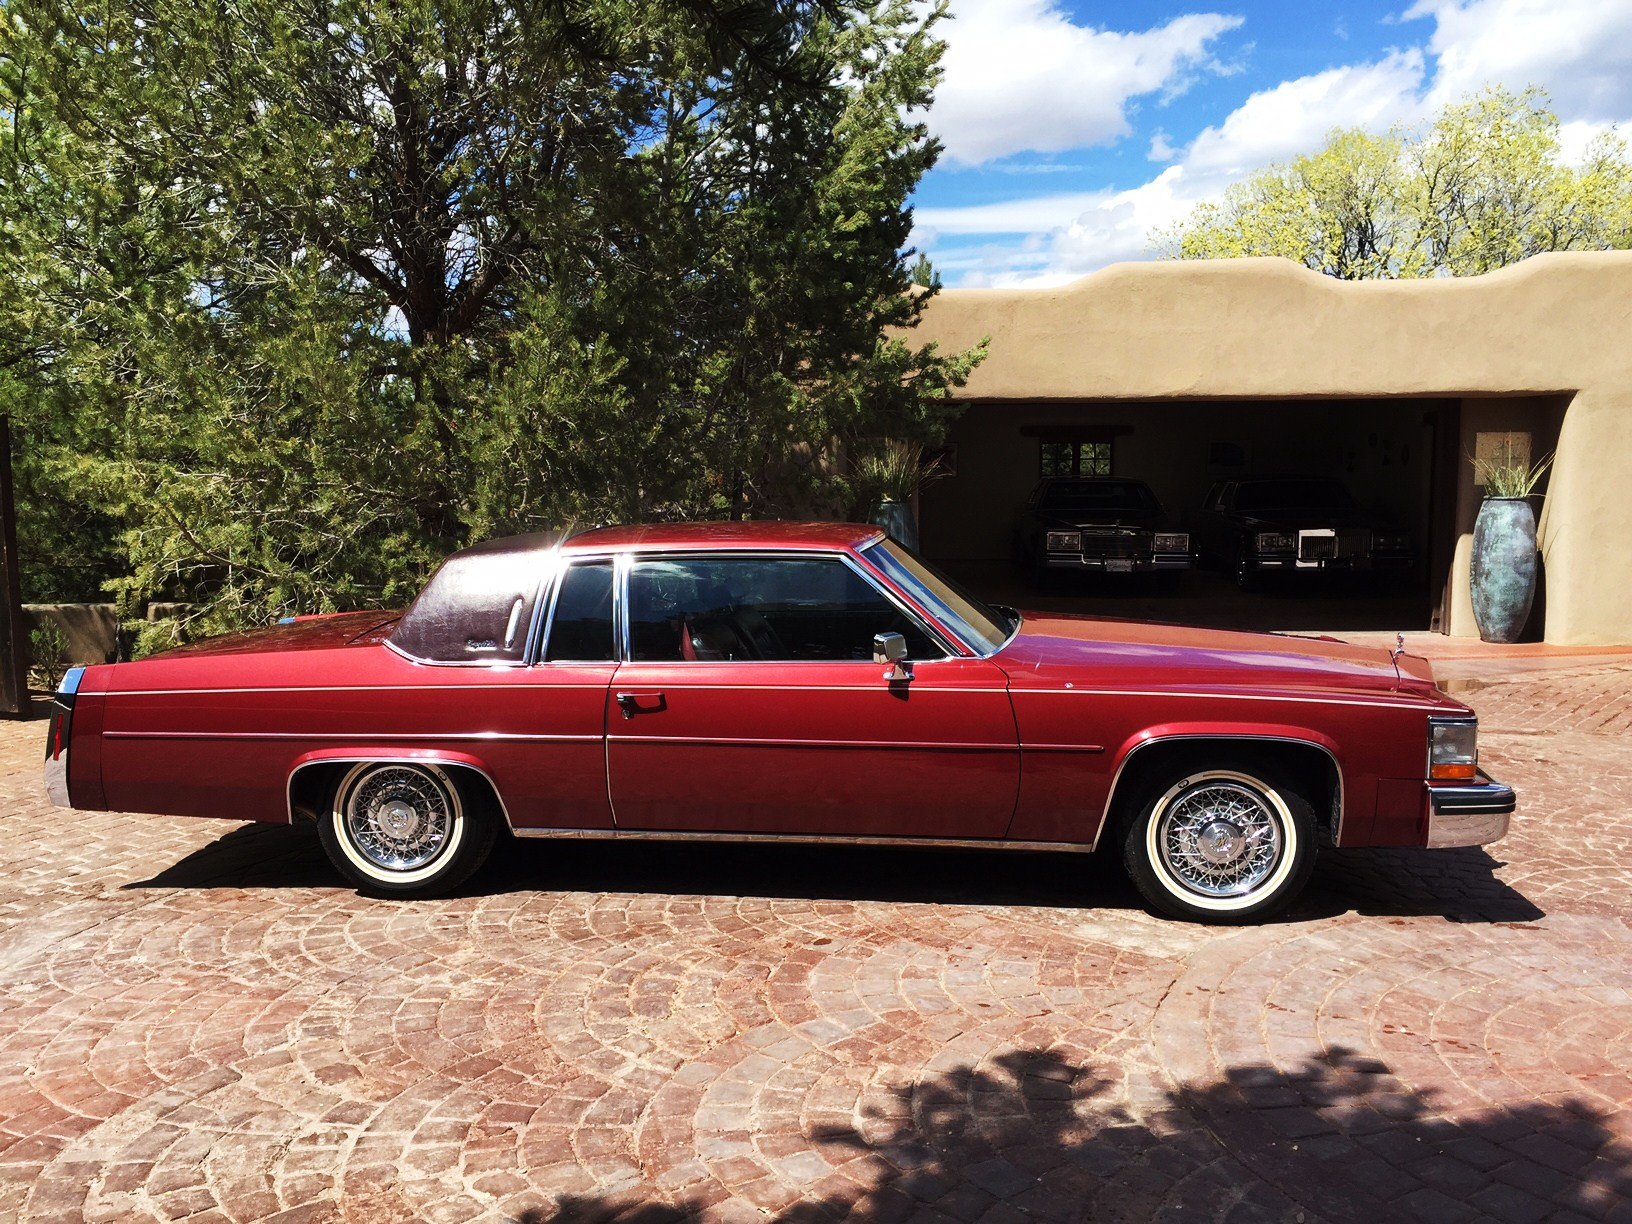 1980 Cadillac Coupe DeVille 6.0 Liter with 46,000 miles « Jim ...